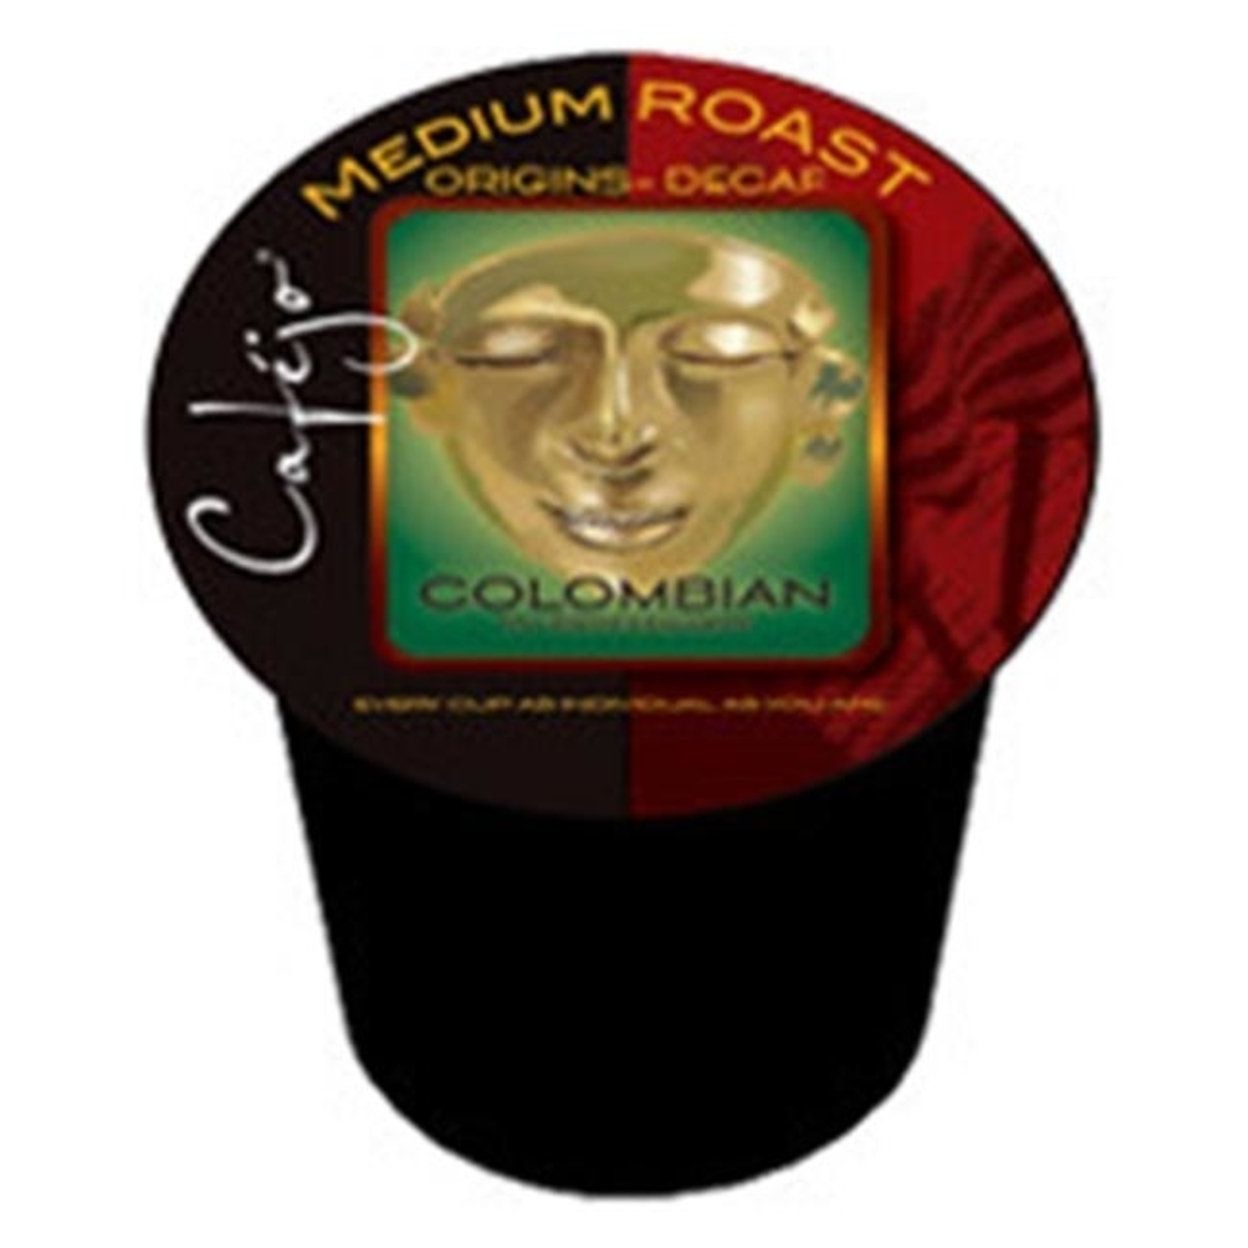 Cafejo K-Cj-Dc-1-50 Decaf Colombian K-Cups for Keurig Brewers 596d1e2b2a00e4250f5a690a